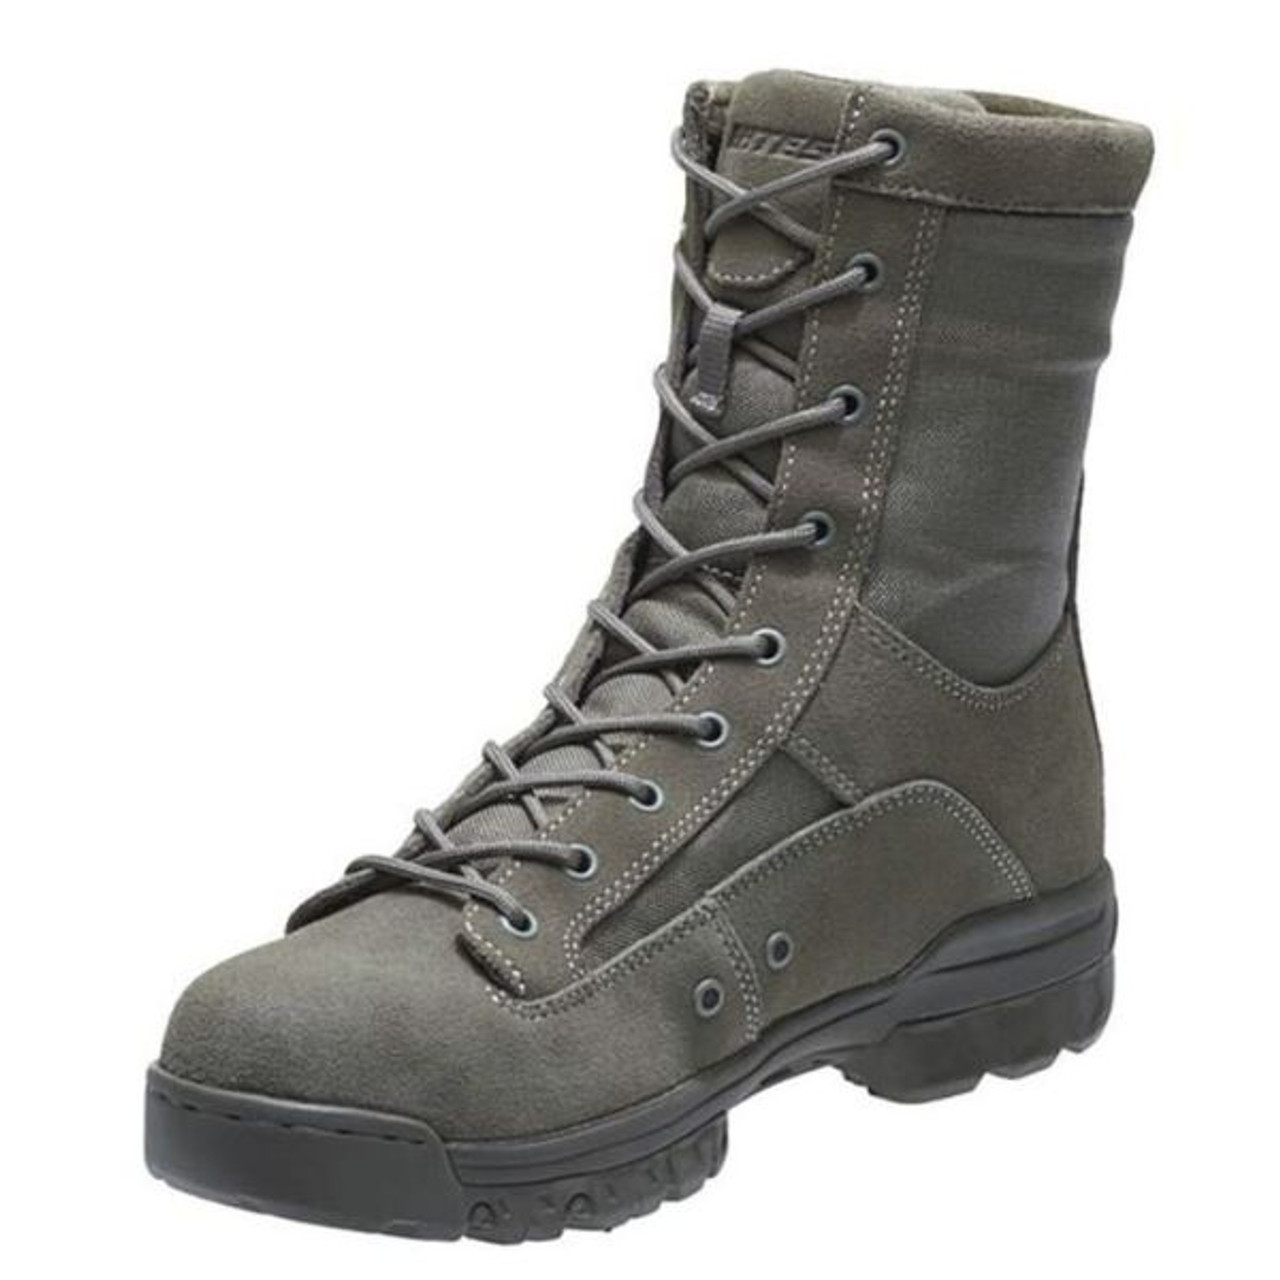 Bates Men's Leather Ranger II Hot Weather Lace Up Boot - Sage